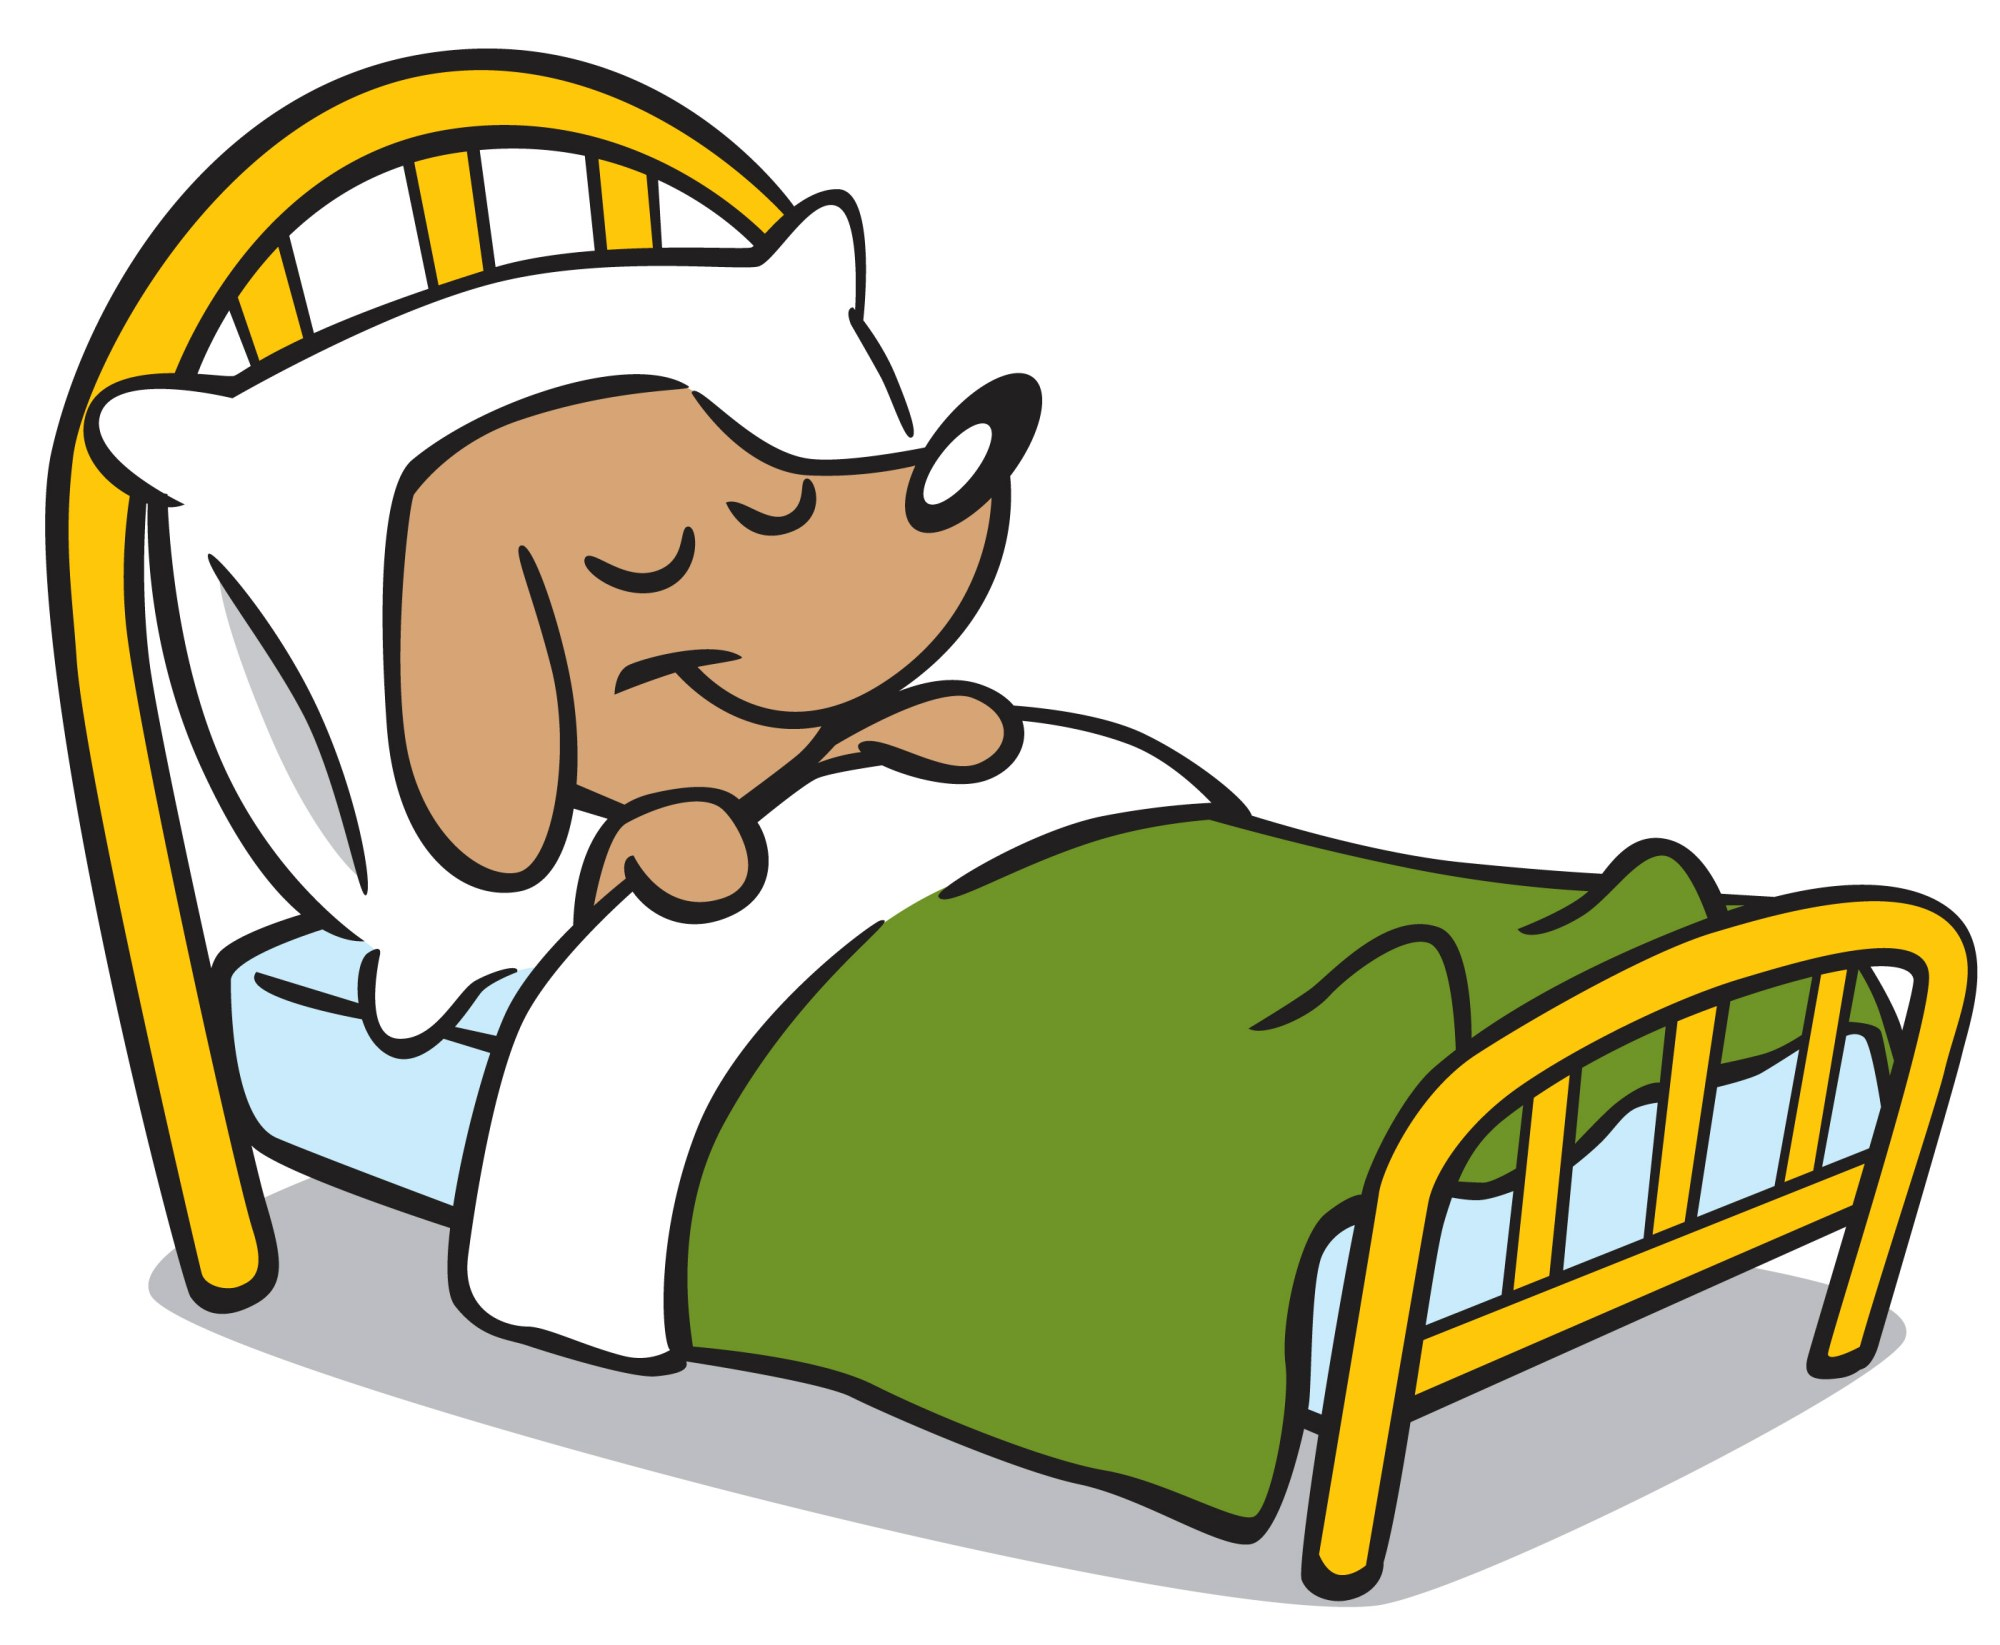 hight resolution of make bed clipart free images 5 3